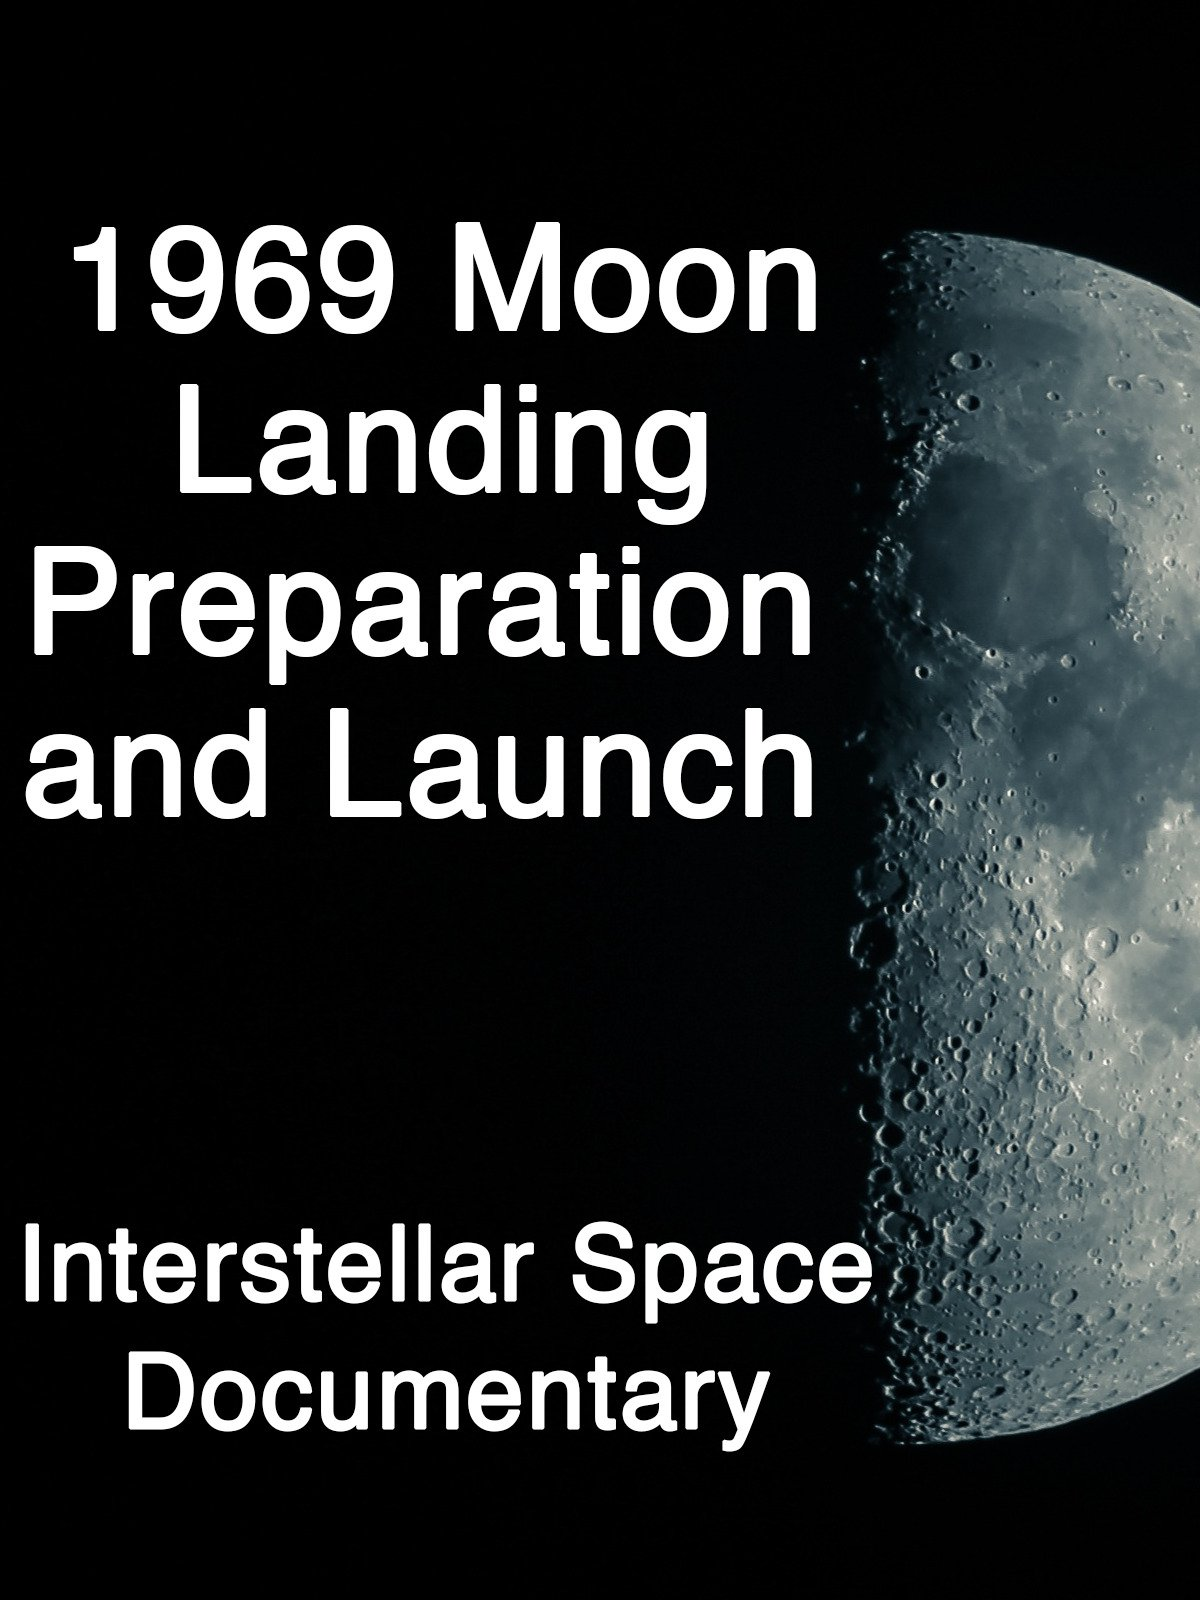 1969 Moon Landing Preparation and Launch: Interstellar Space Documentary